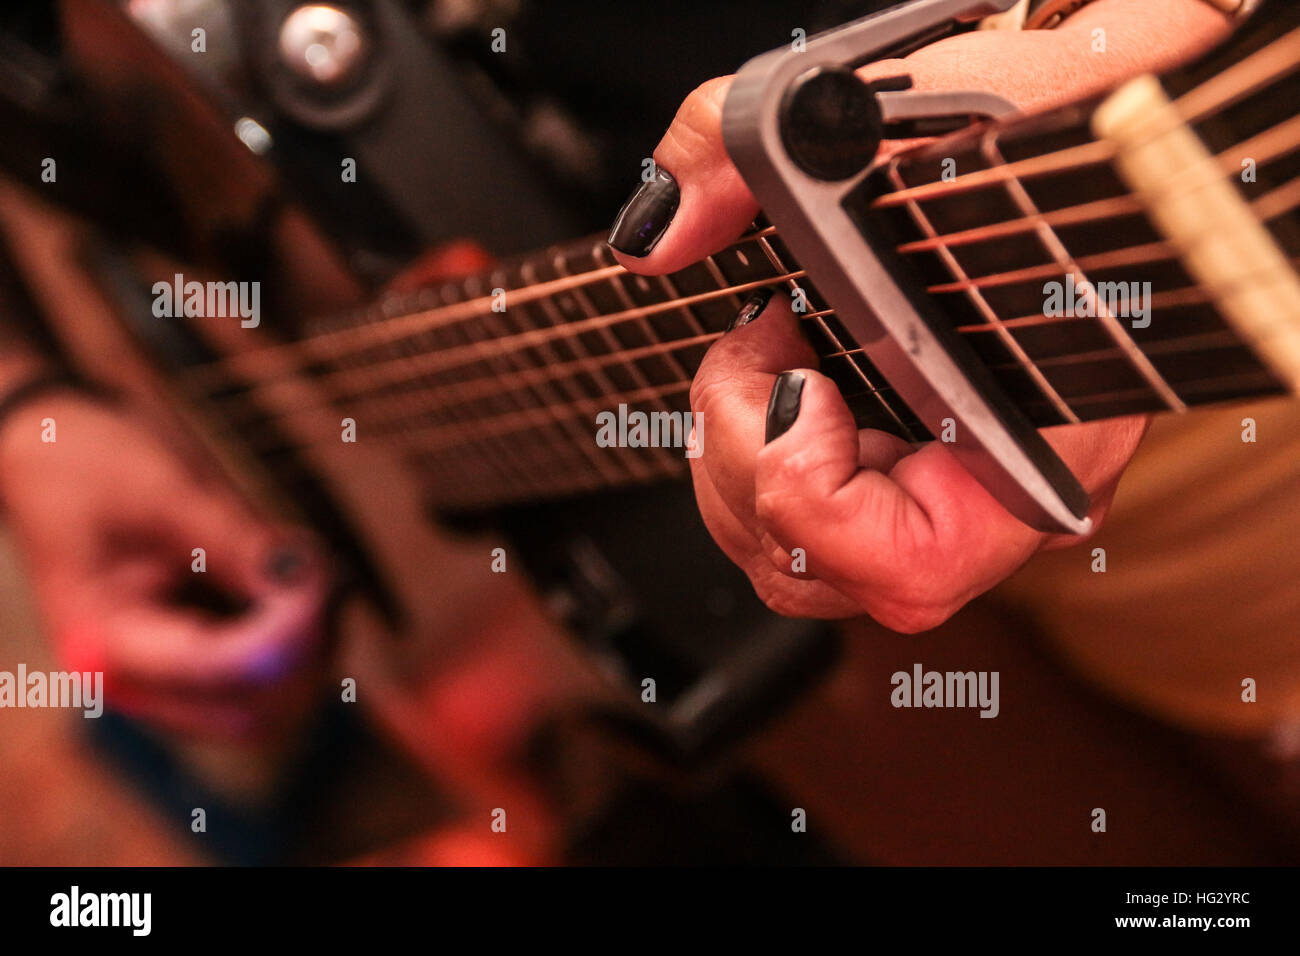 Female hands playing a guitar - Stock Image